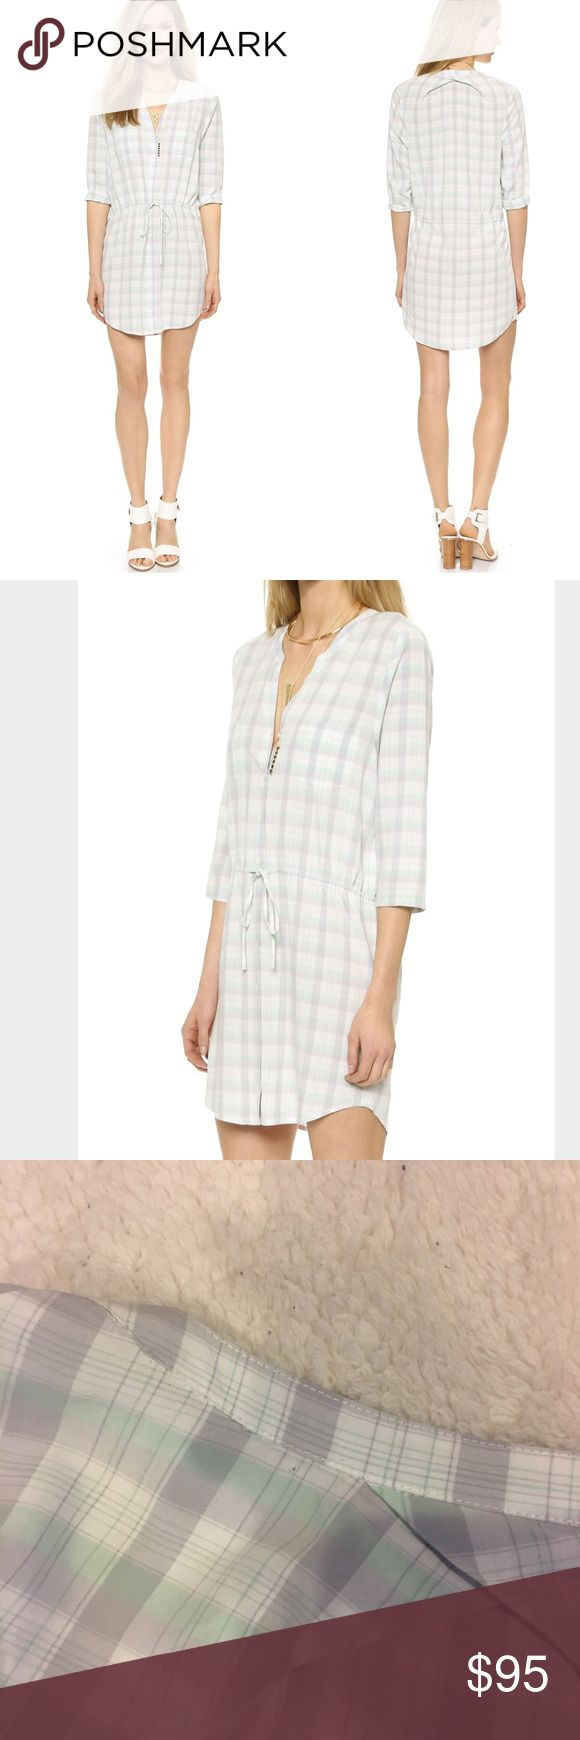 Soft Joie Drawstring Shirt Dress So cute and on trend. In great condition! Just a small (pretty unnoticeable) hole near collar.   Fabric: Lightweight weave. 100% rayon. Unlined Bust: 44 inches and Length: 36 inches  Oversized fit  No trades, please 0001231700tb Joie Dresses